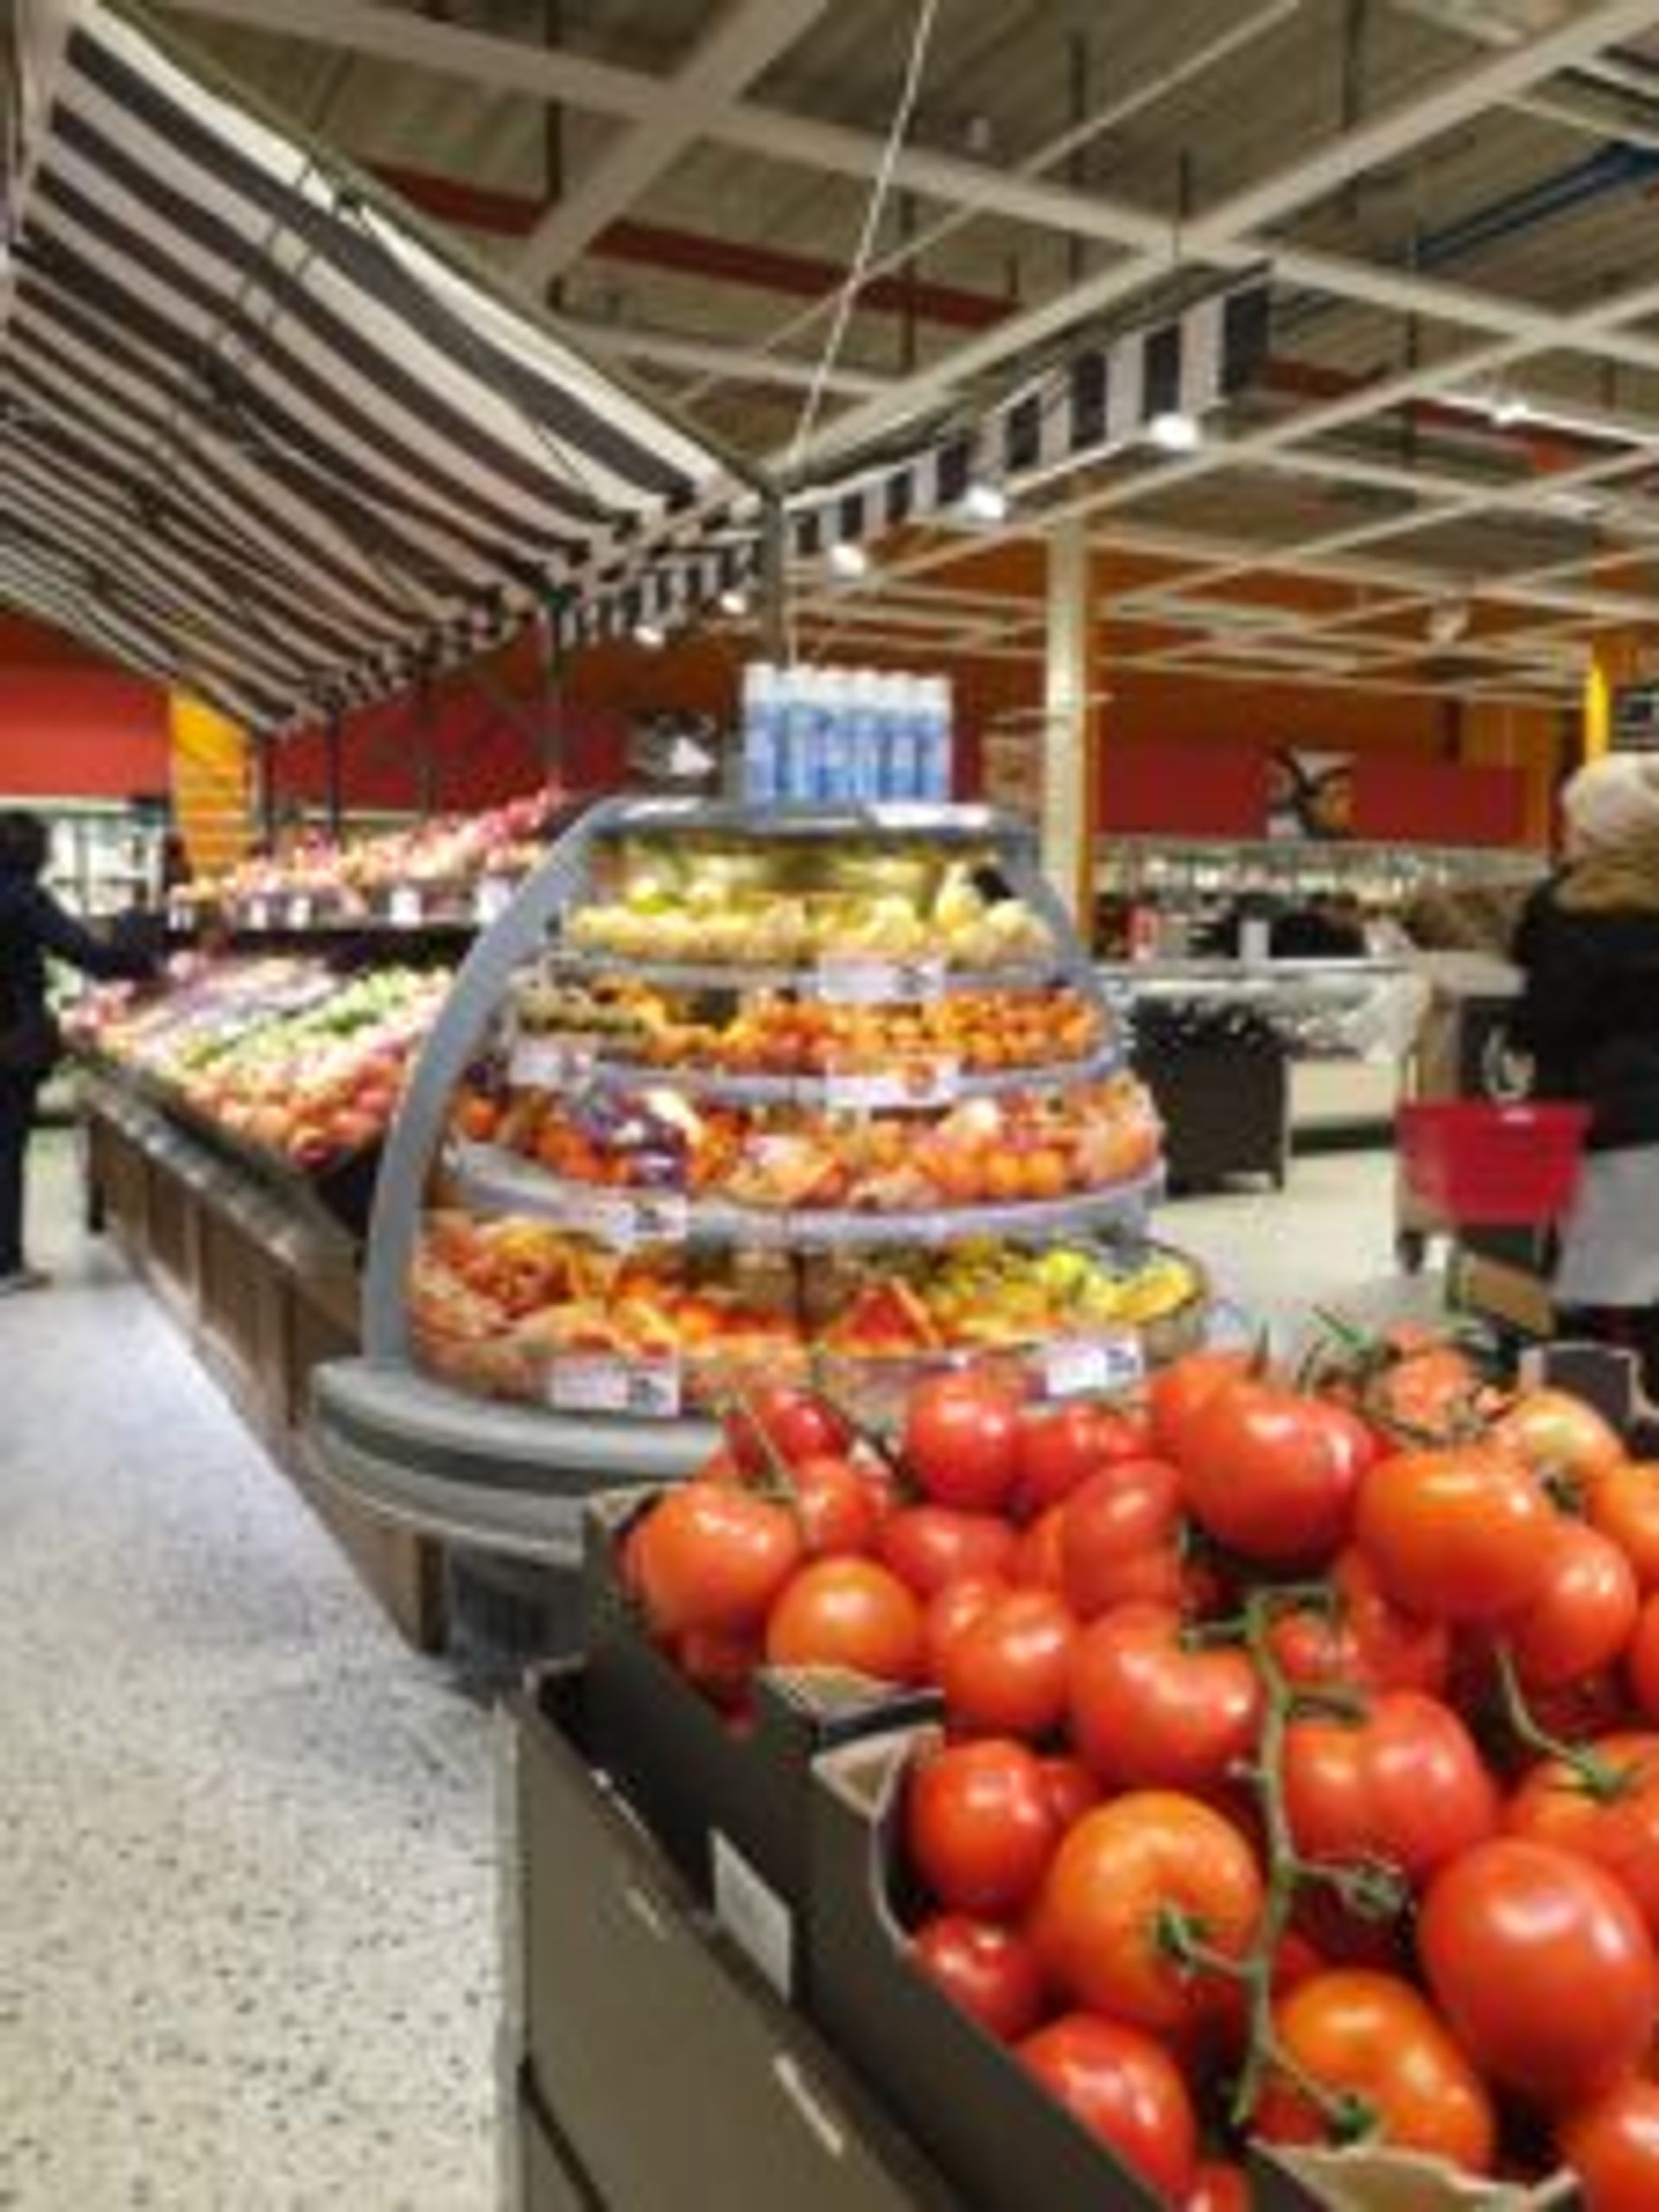 Aisles of fresh fruit and vegetables in a supermarket.